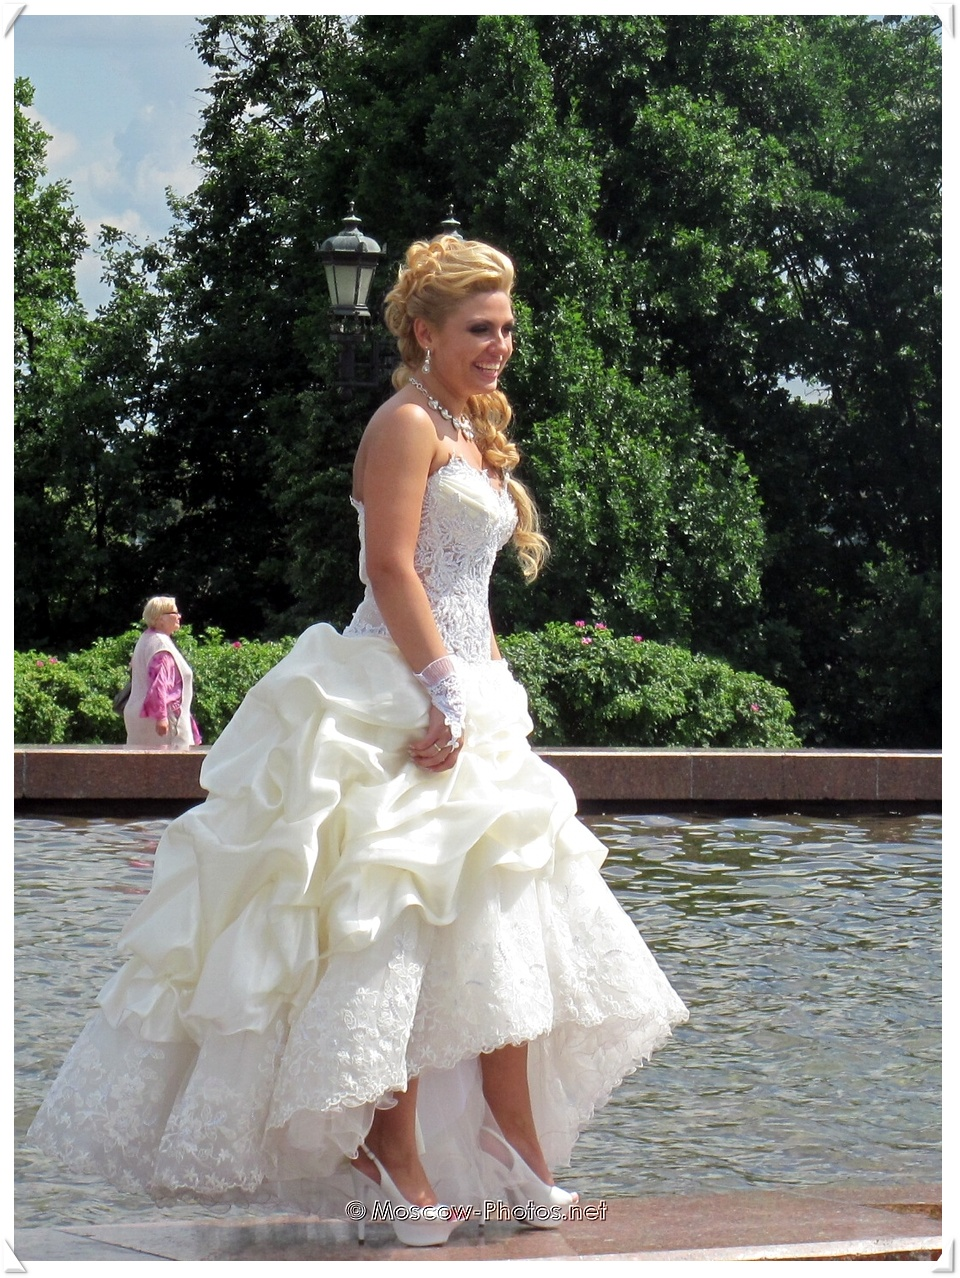 Moscow lady in a wedding dress at the fountain